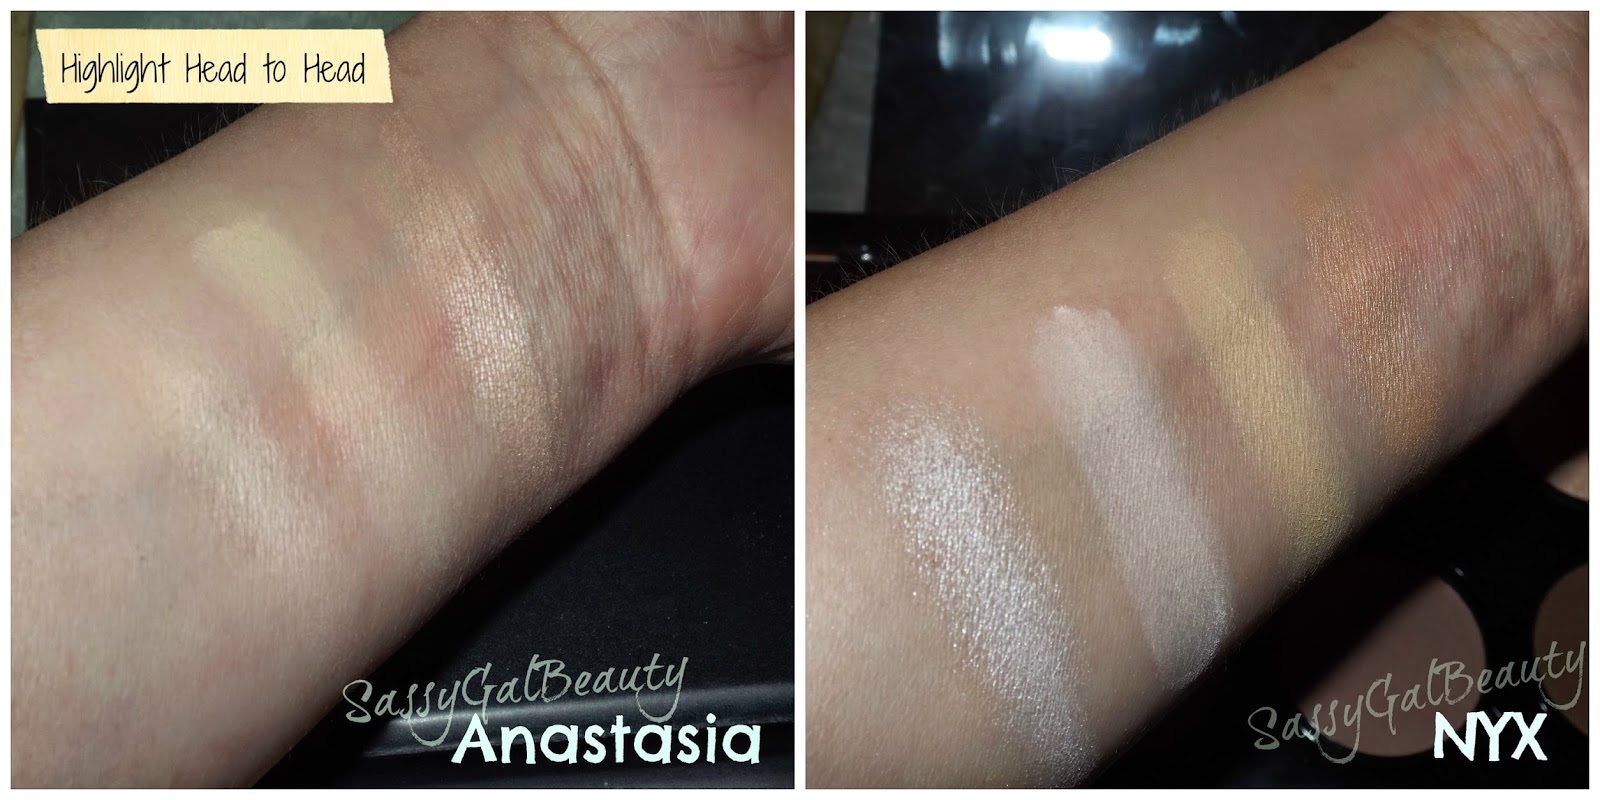 Anastasia VS NYX: Highlight Head to Head